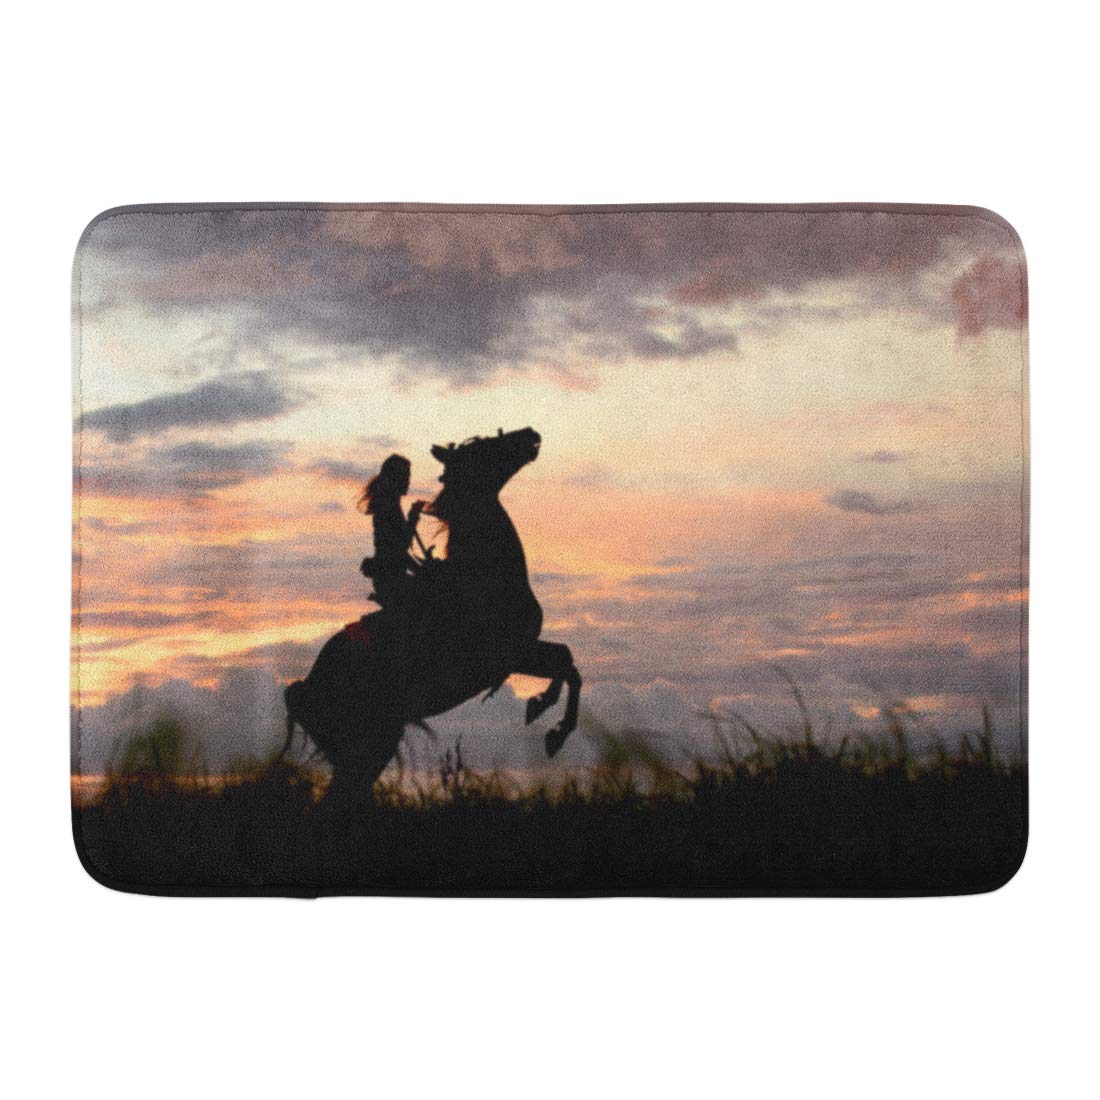 Freedom Furniture Rugs Godpok Way To The Top Leader And Freedom Happy Girl Riding Horse Arabian Stallion Stands On Hind Legs Rearing Up Rug Doormat Bath Mat 23 6x15 7 Inch